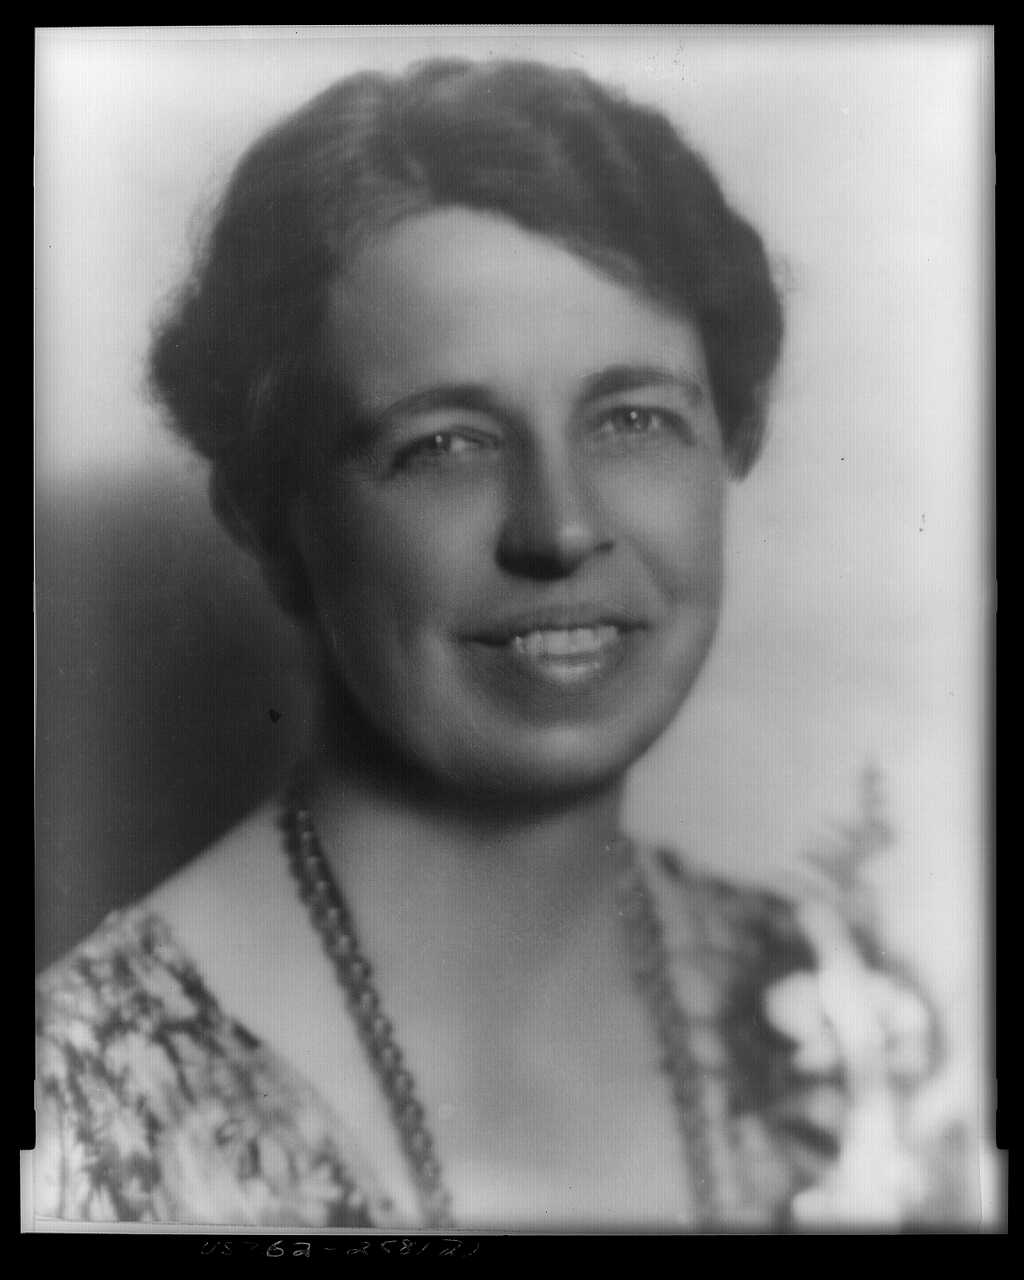 Mrs. Franklin Delano Roosevelt, head-and-shoulders portrait, facing slightly right